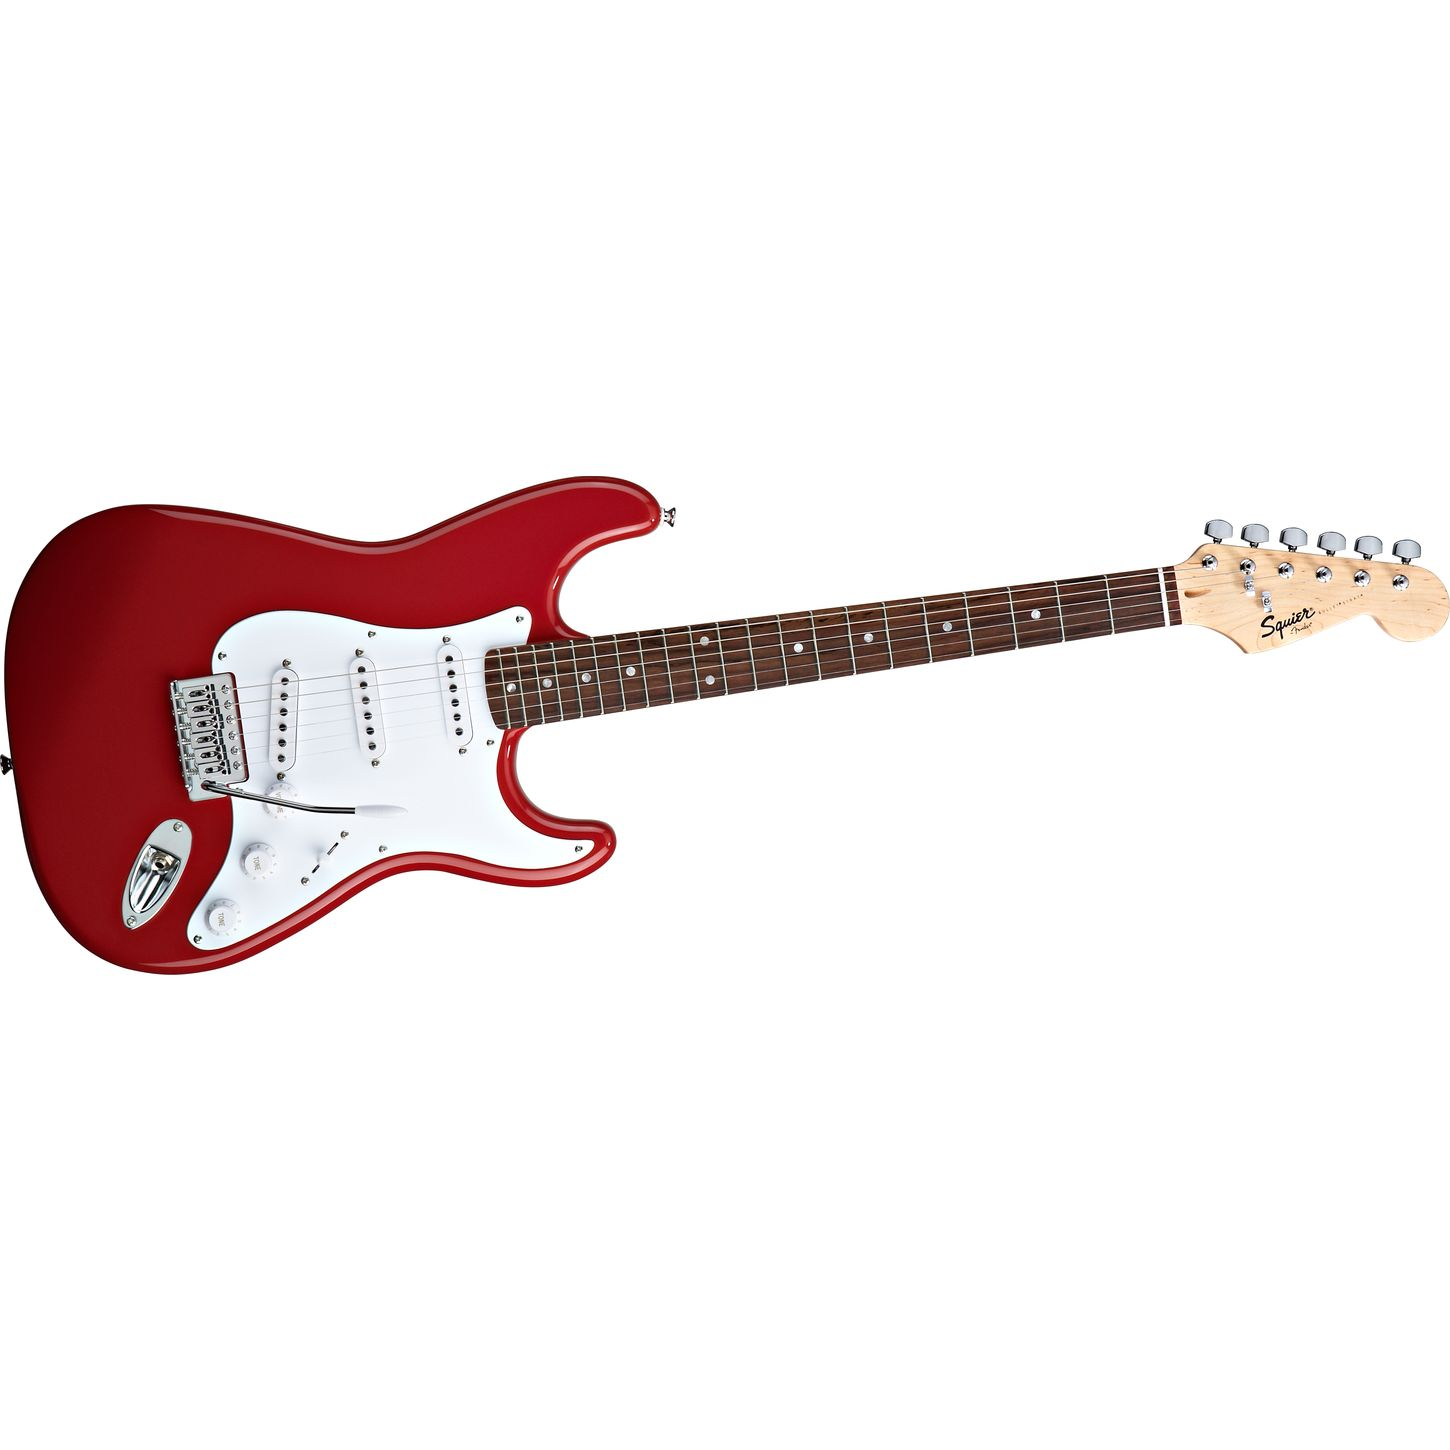 squier by fender bullet strat fiesta red electric guitar. Black Bedroom Furniture Sets. Home Design Ideas